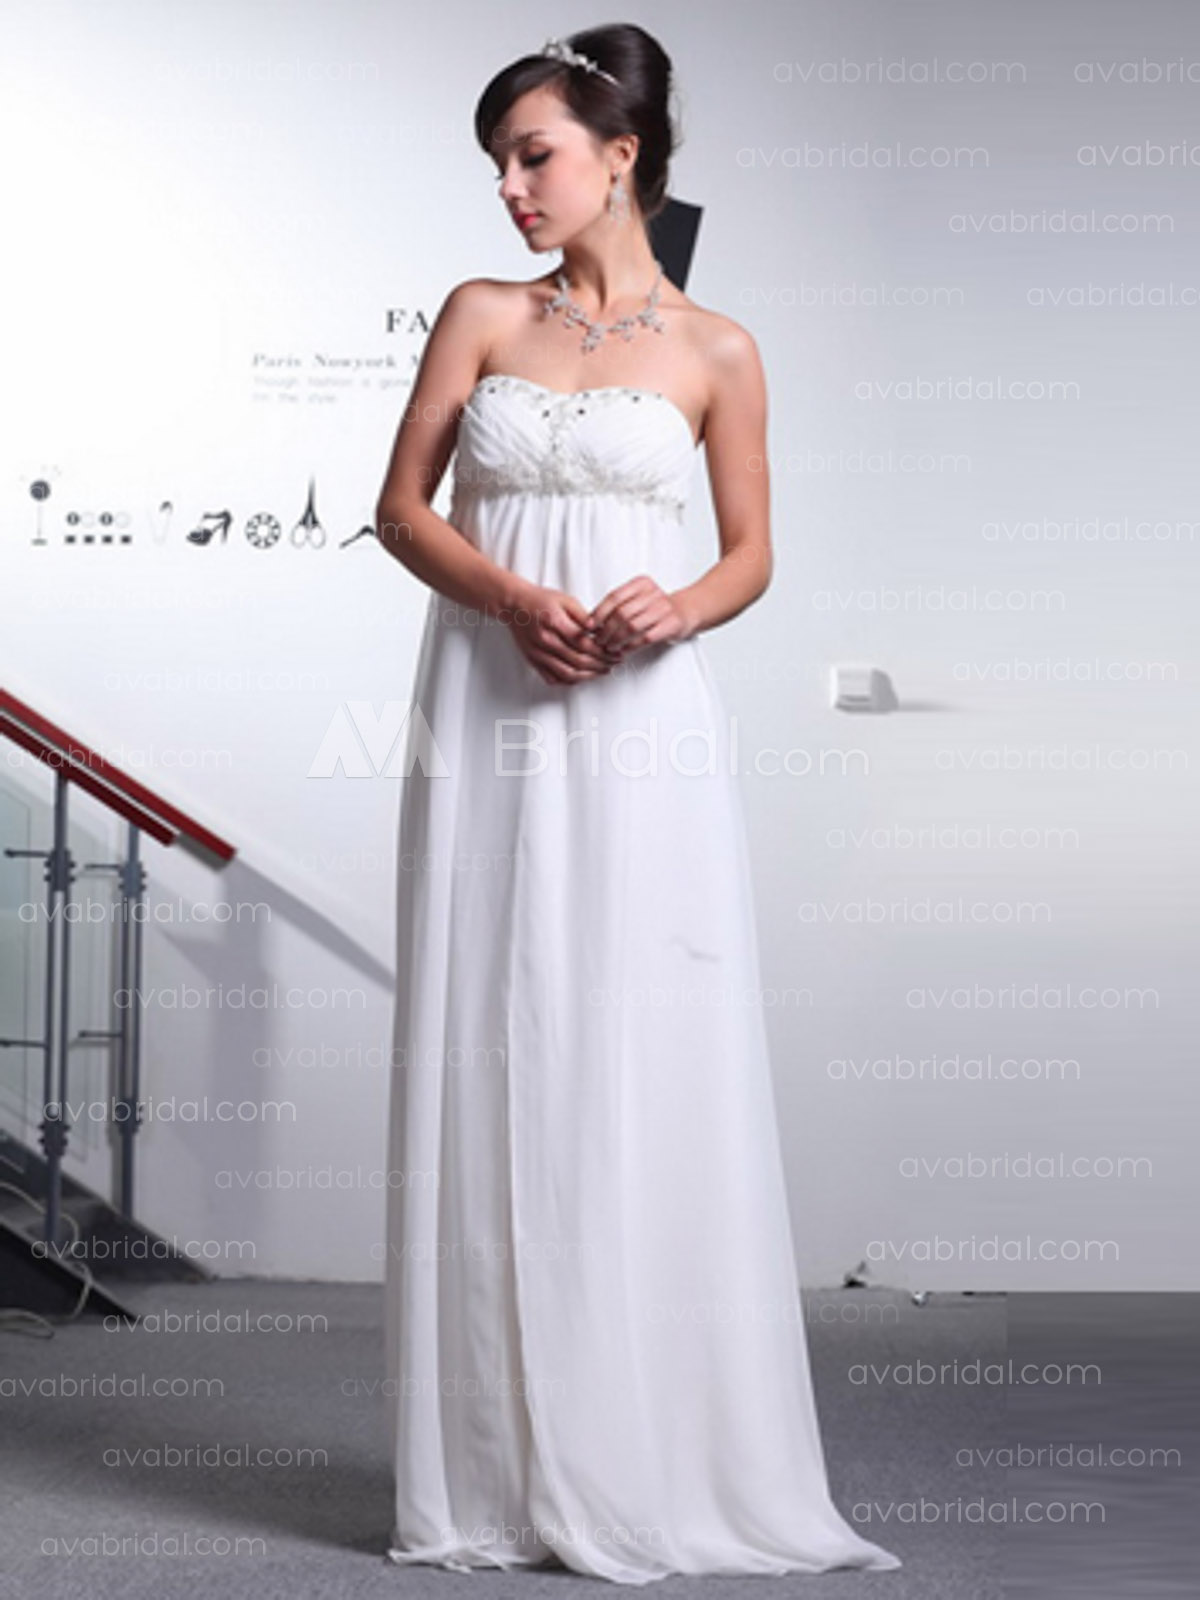 Grecian Wedding Dress.Grecian Wedding Dress Valentina